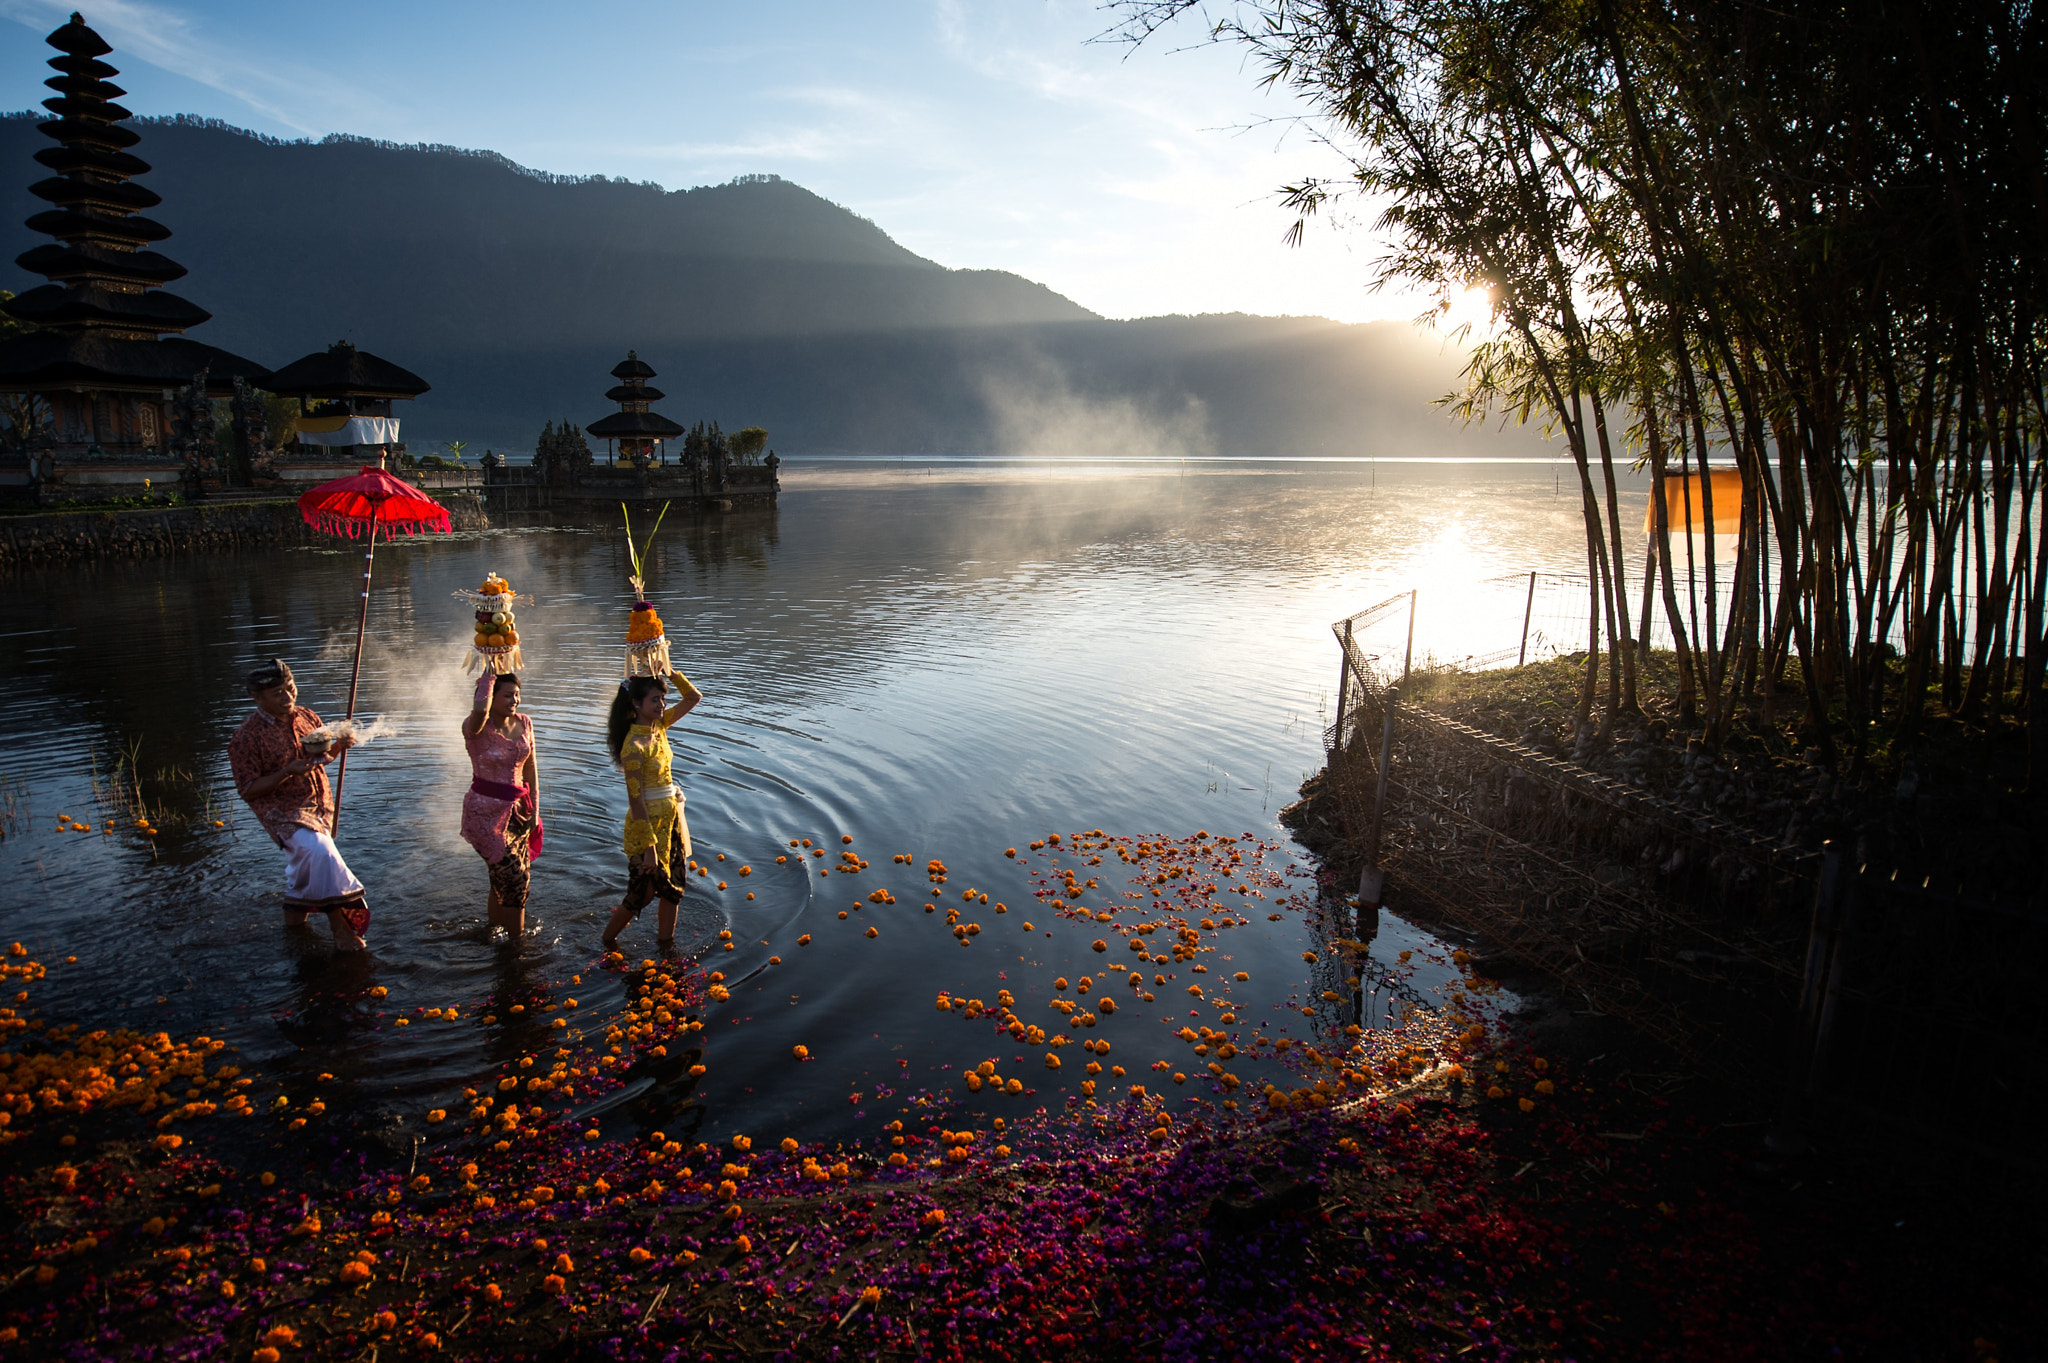 Photograph Another Day in Paradise by James Khoo on 500px